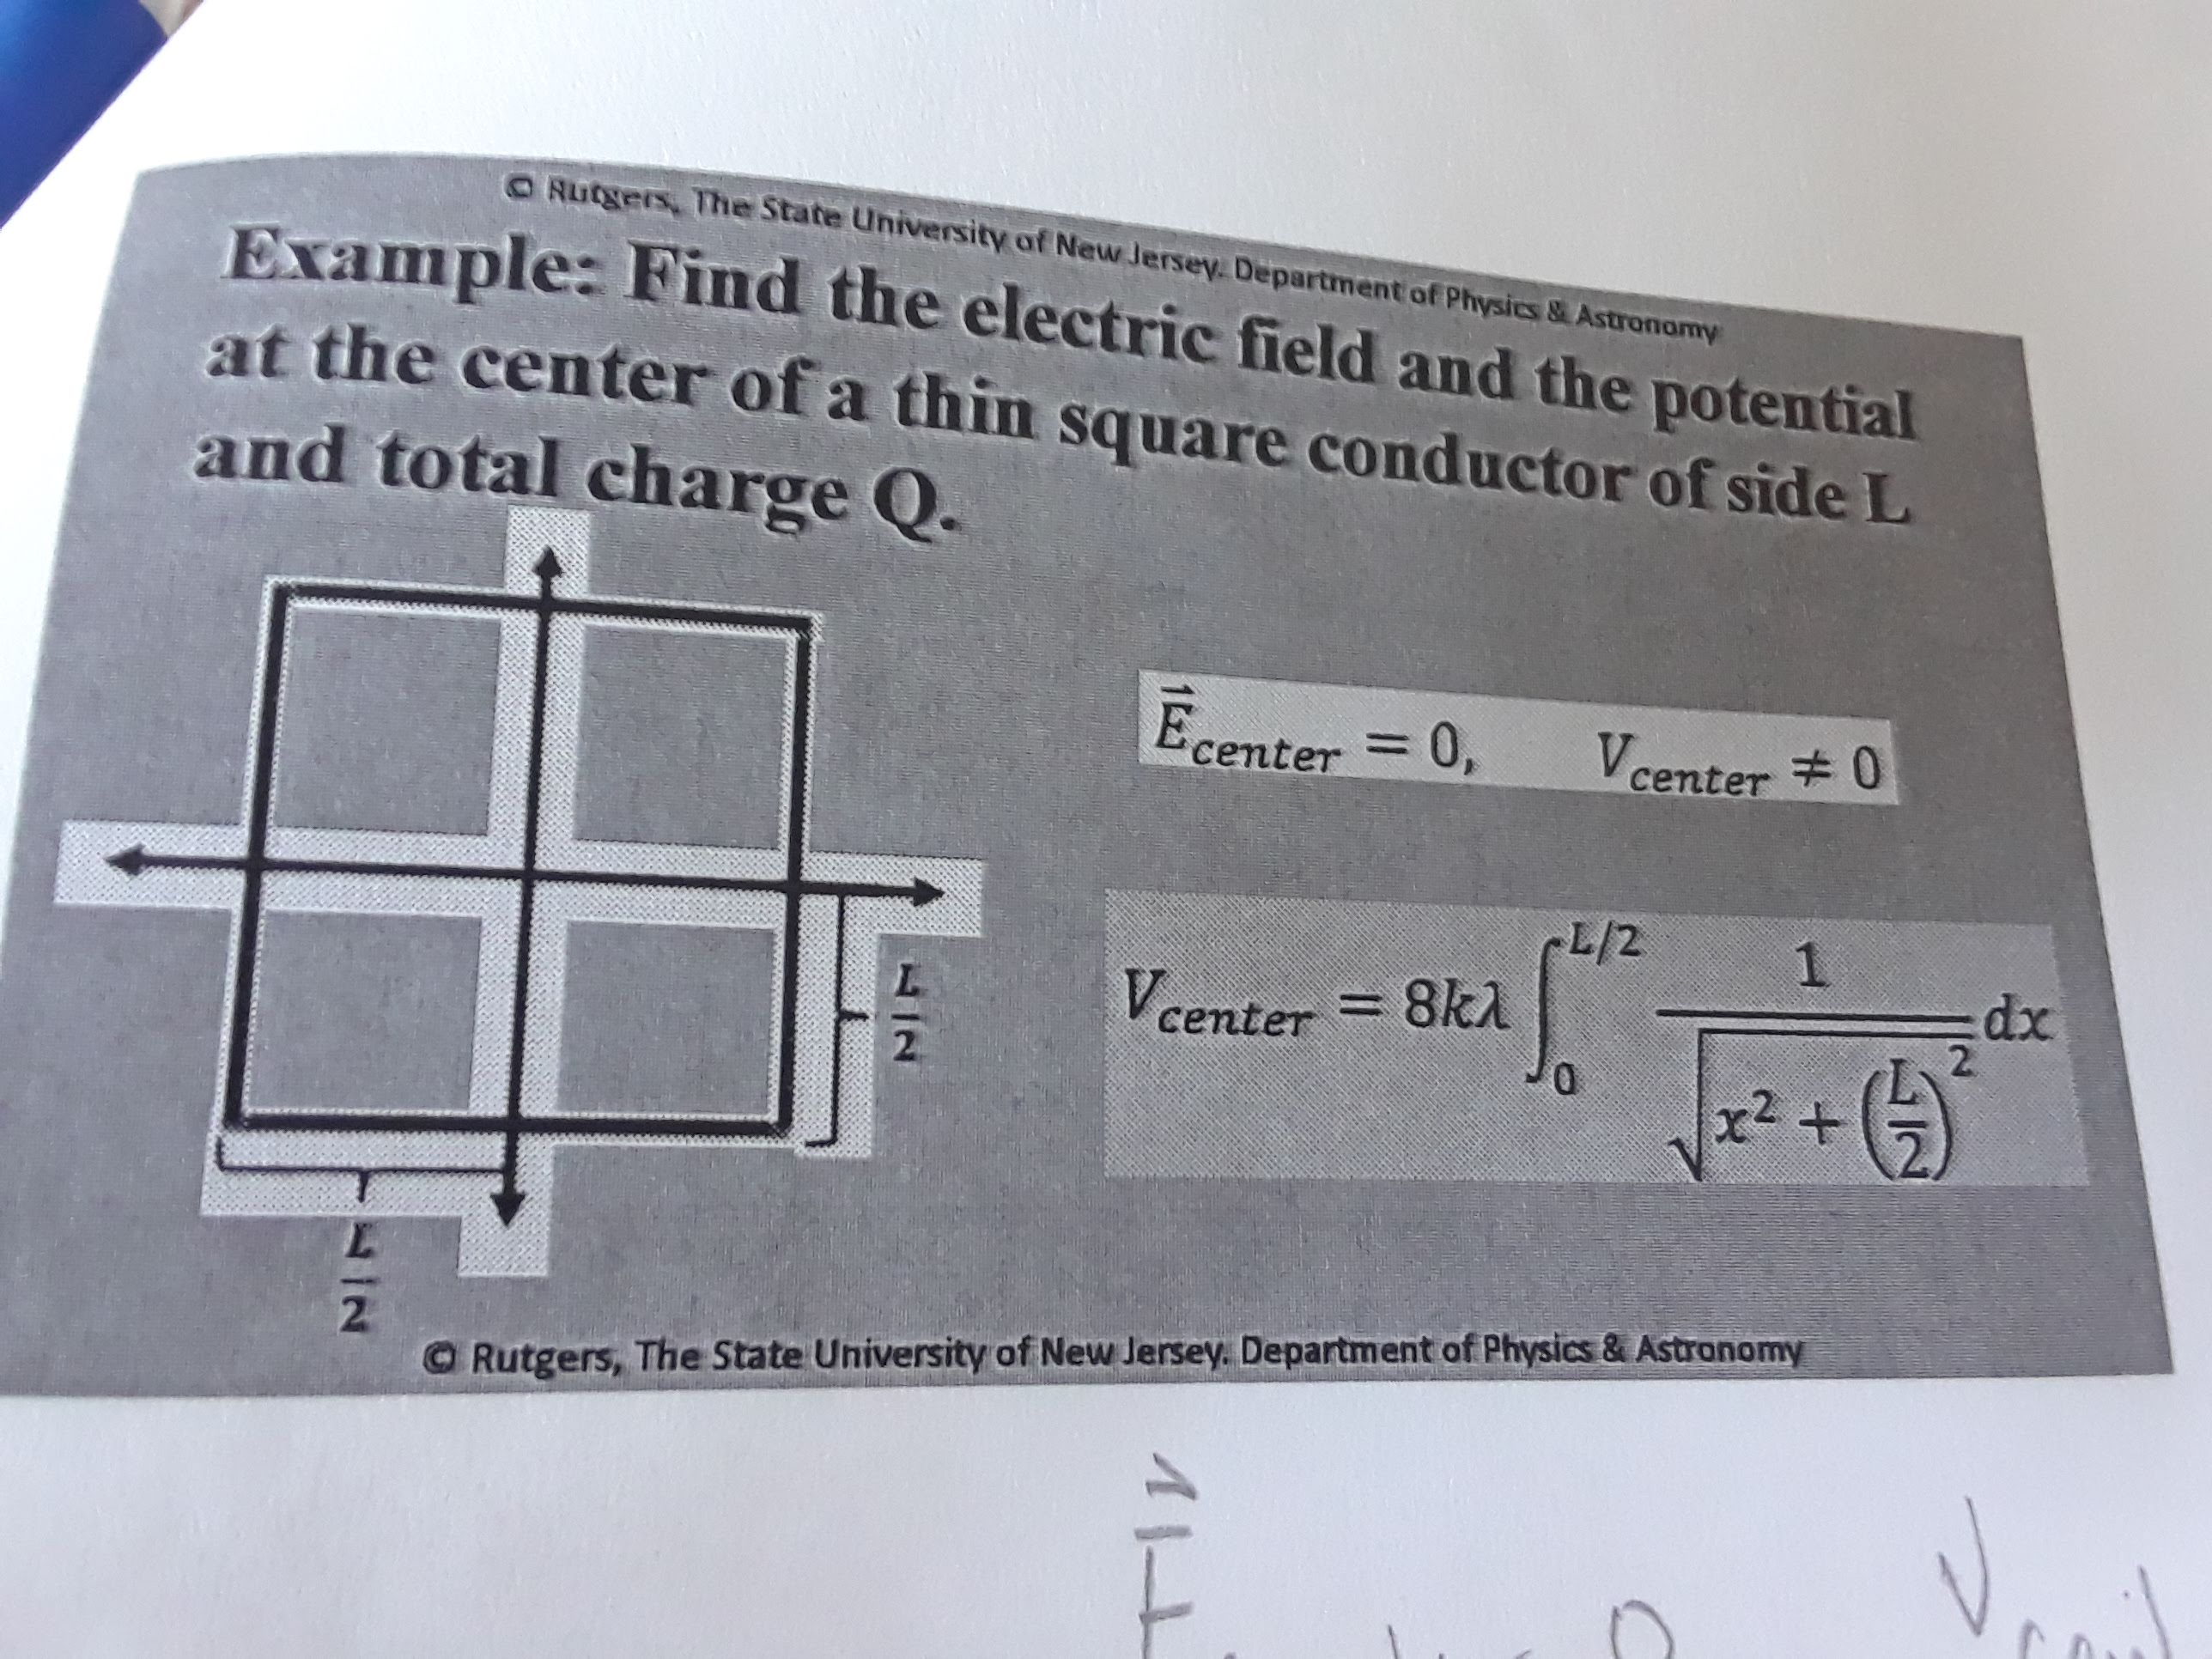 O Rutgers, The State University of New Jersey. Department of Physics&Astronormy Example: Find the electric field and the potential at the center of a thin square conductor of side L and total charge Q. Ecenter 0, Vcenter 0 L/2 8k1 1 xp :dx 2. center= 2 + r2 2 O Rutgers, The State University of New Jersey. Department of Physics & Astranomy